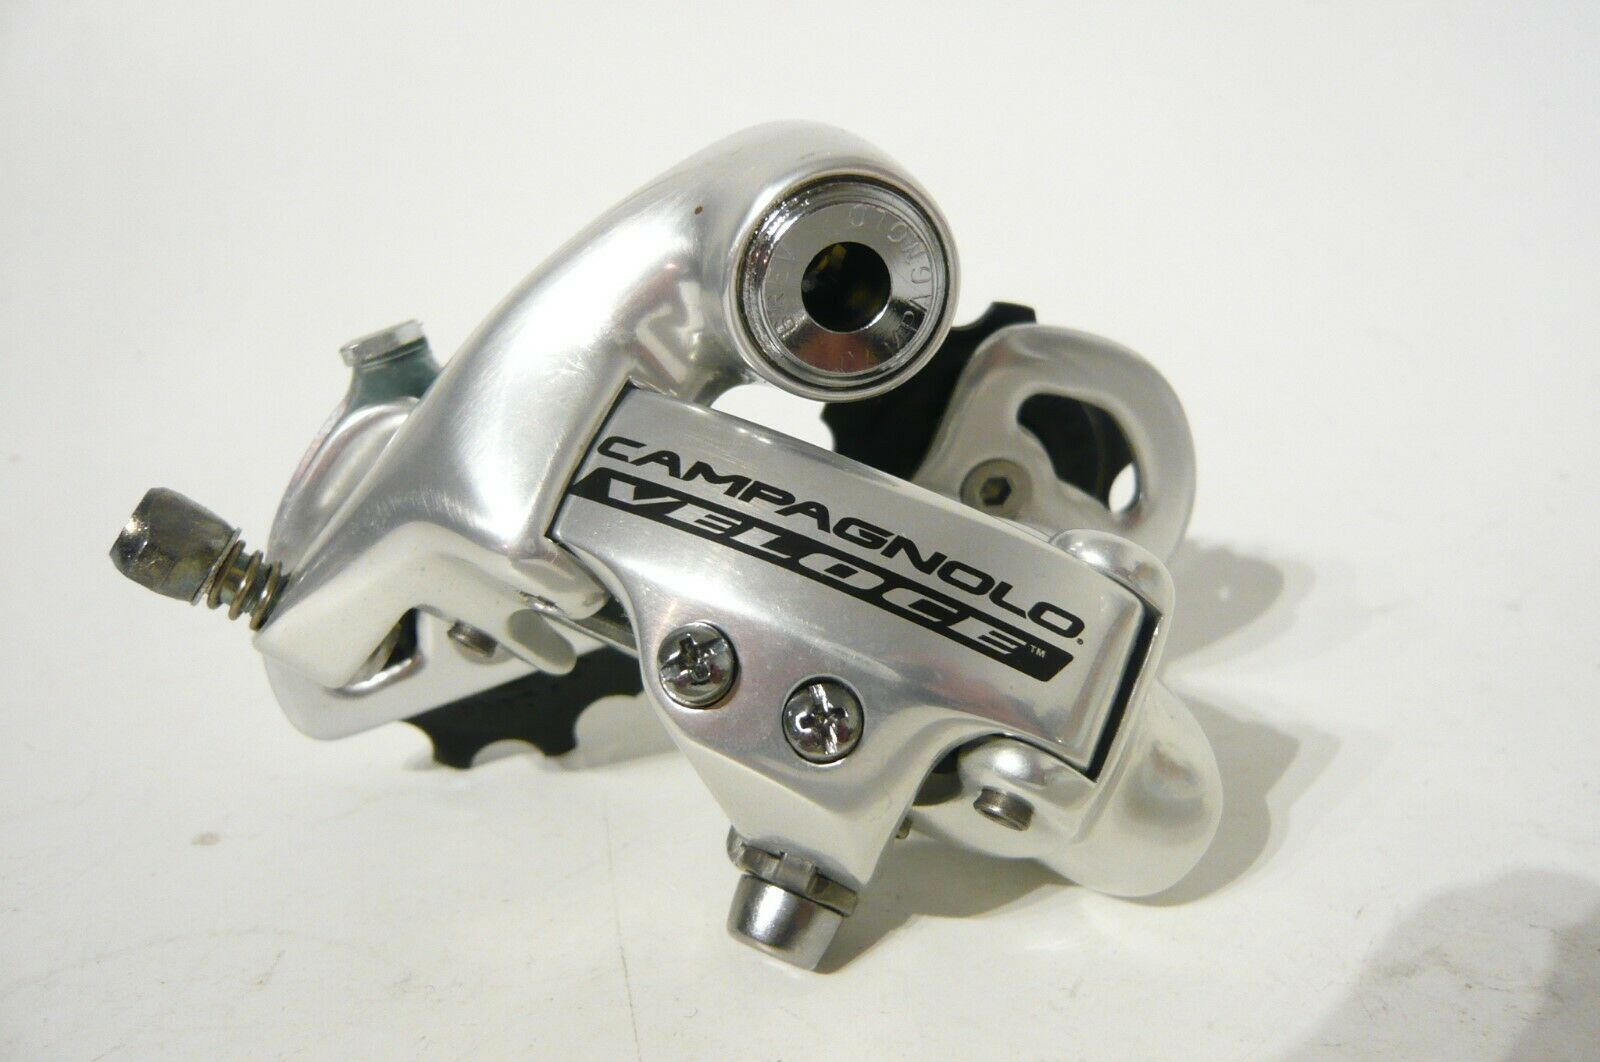 Campagnolo 2007  Veloce short cage 10 speed rear derailleur  in stock